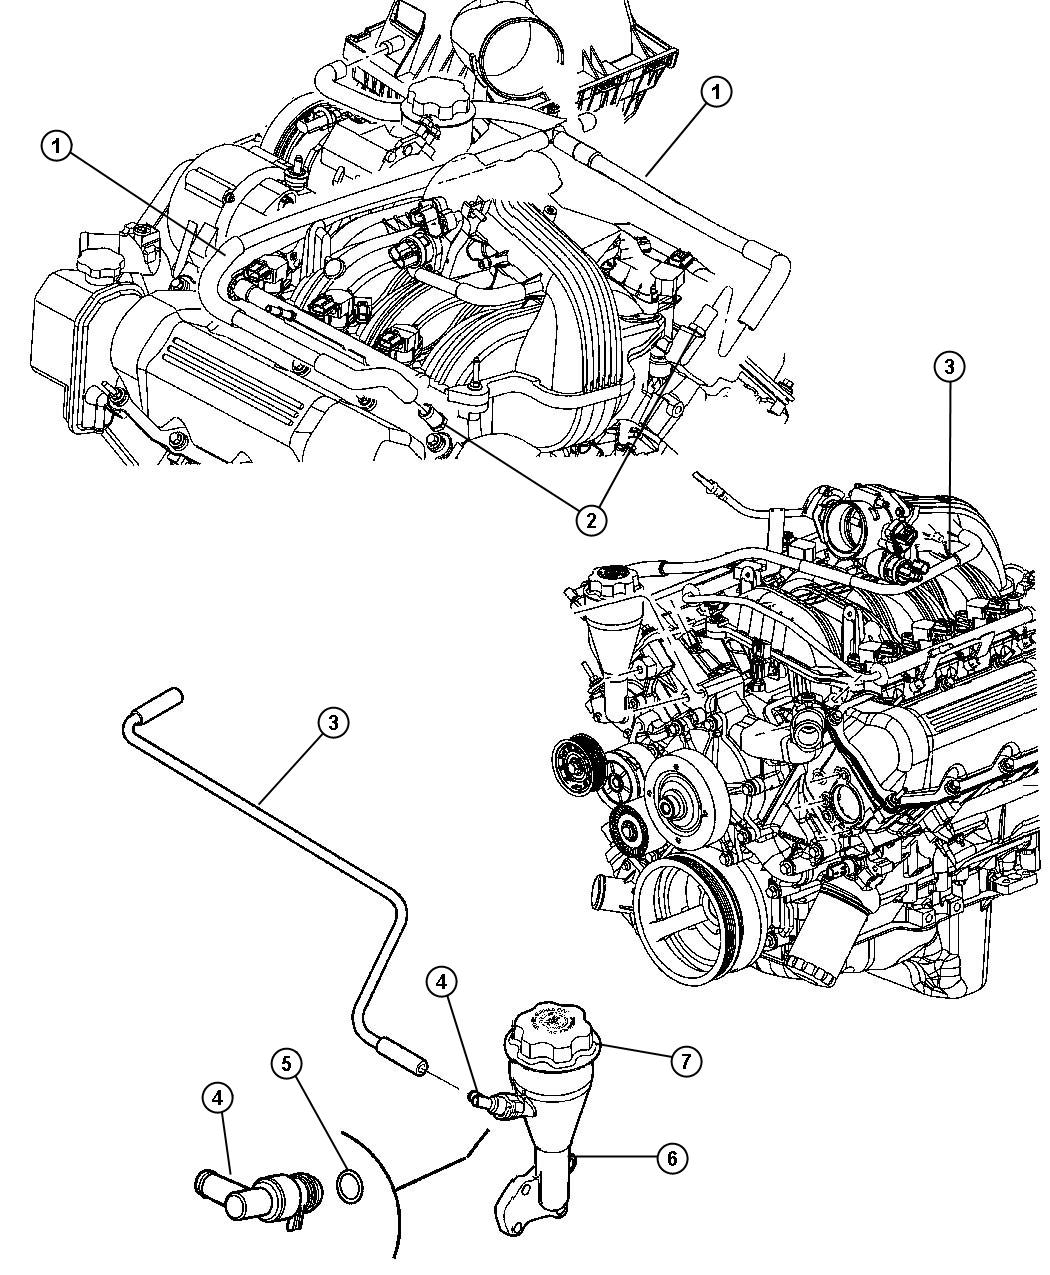 Jeep Grand Cherokee Tube. Crankcase vent to air cleaner